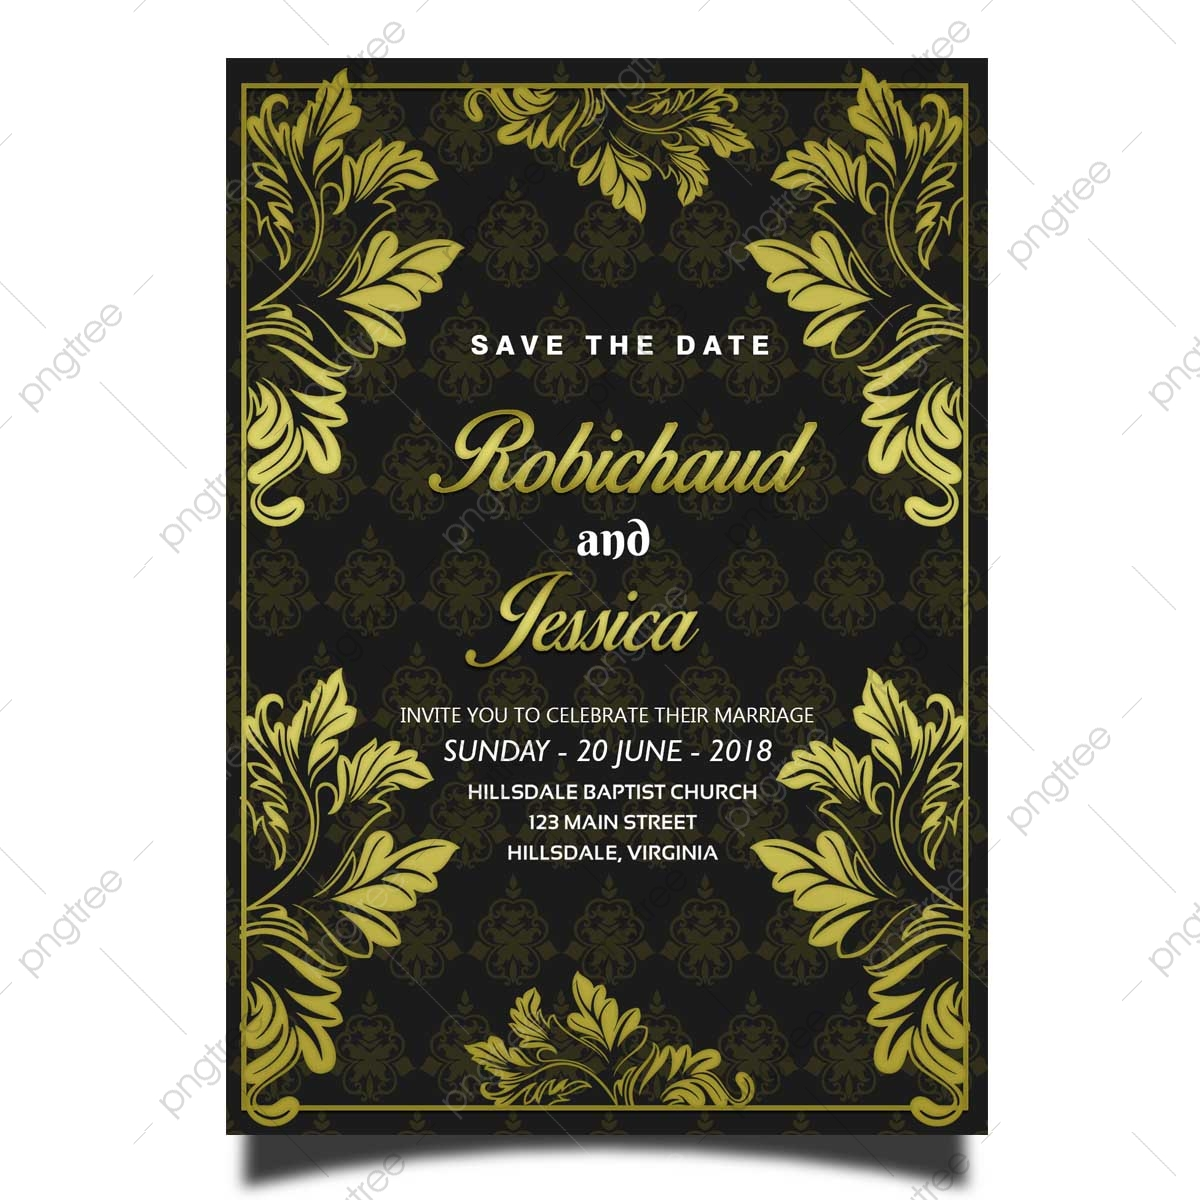 Gold Flower Wedding Invitation Card Template With Elegant Background And Pattern Template For Free Download On Pngtree